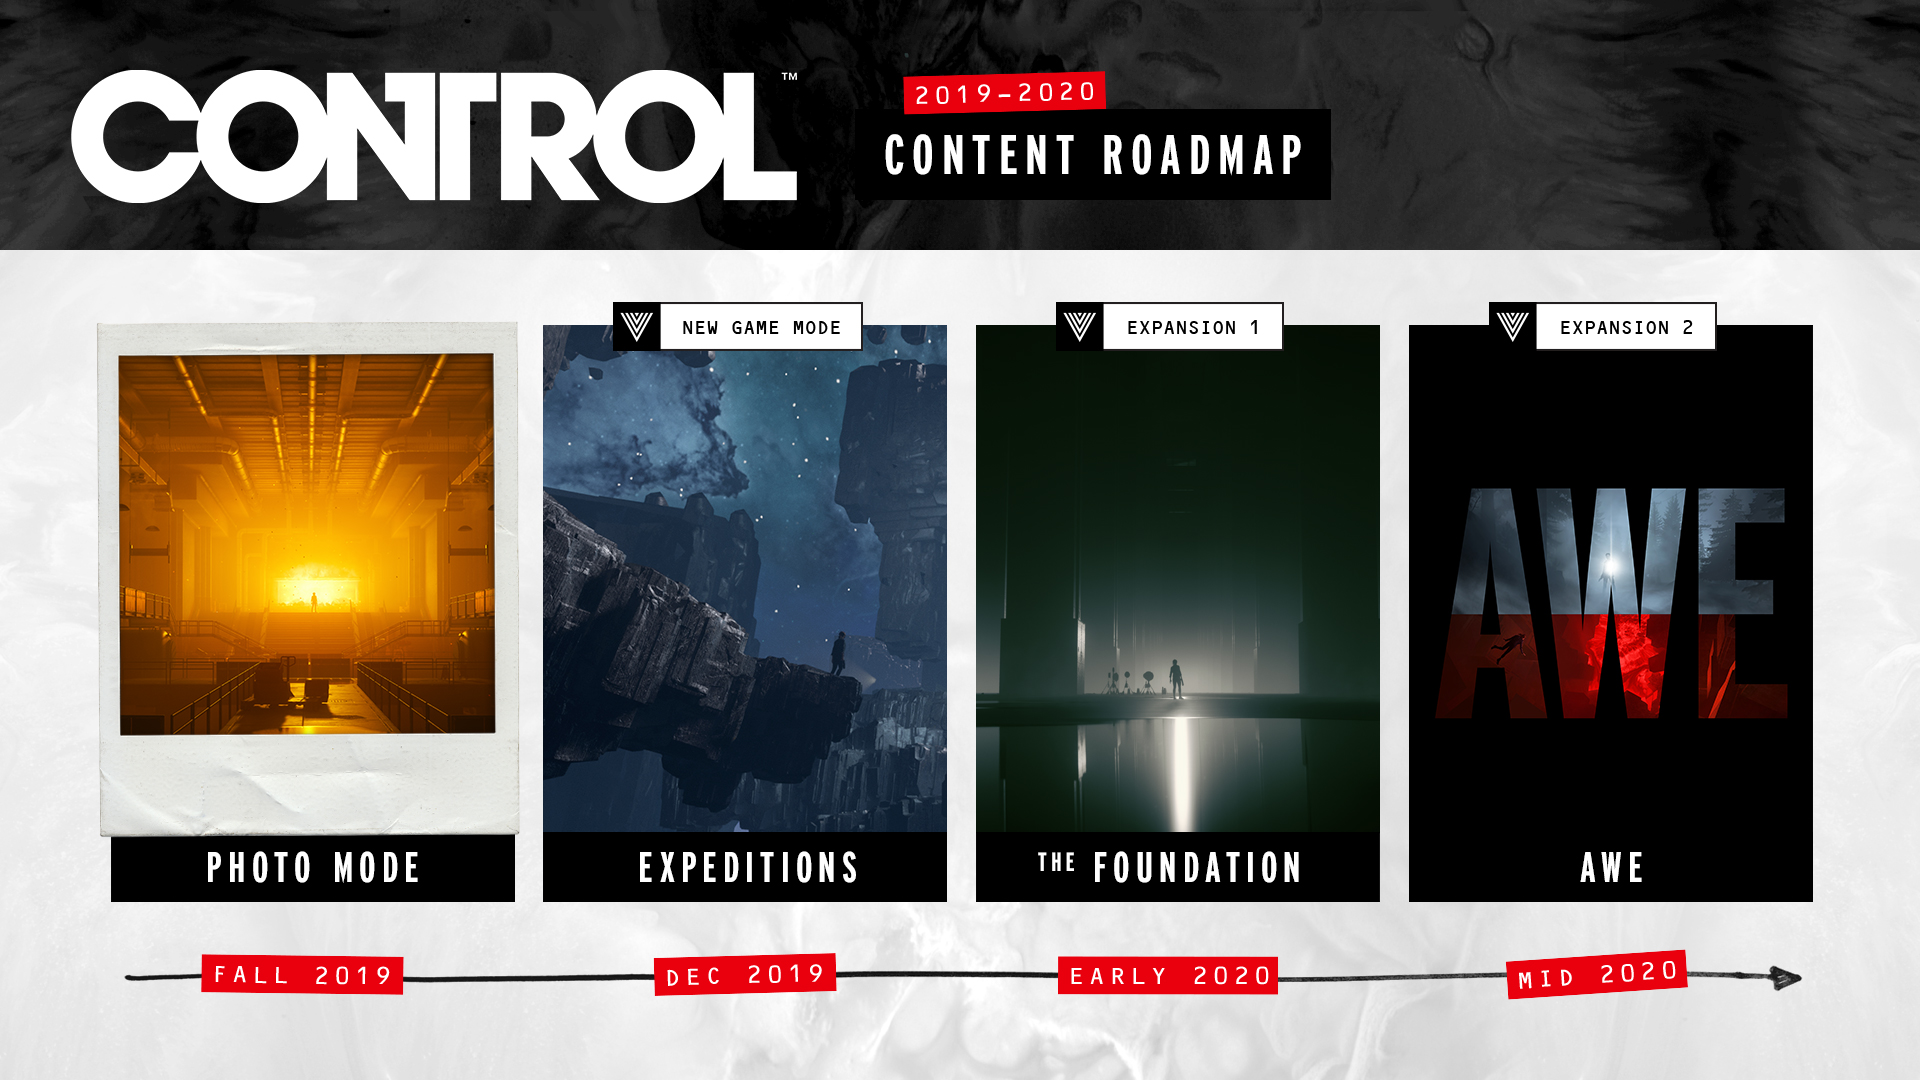 Control Post Launch Content Roadmap detailed